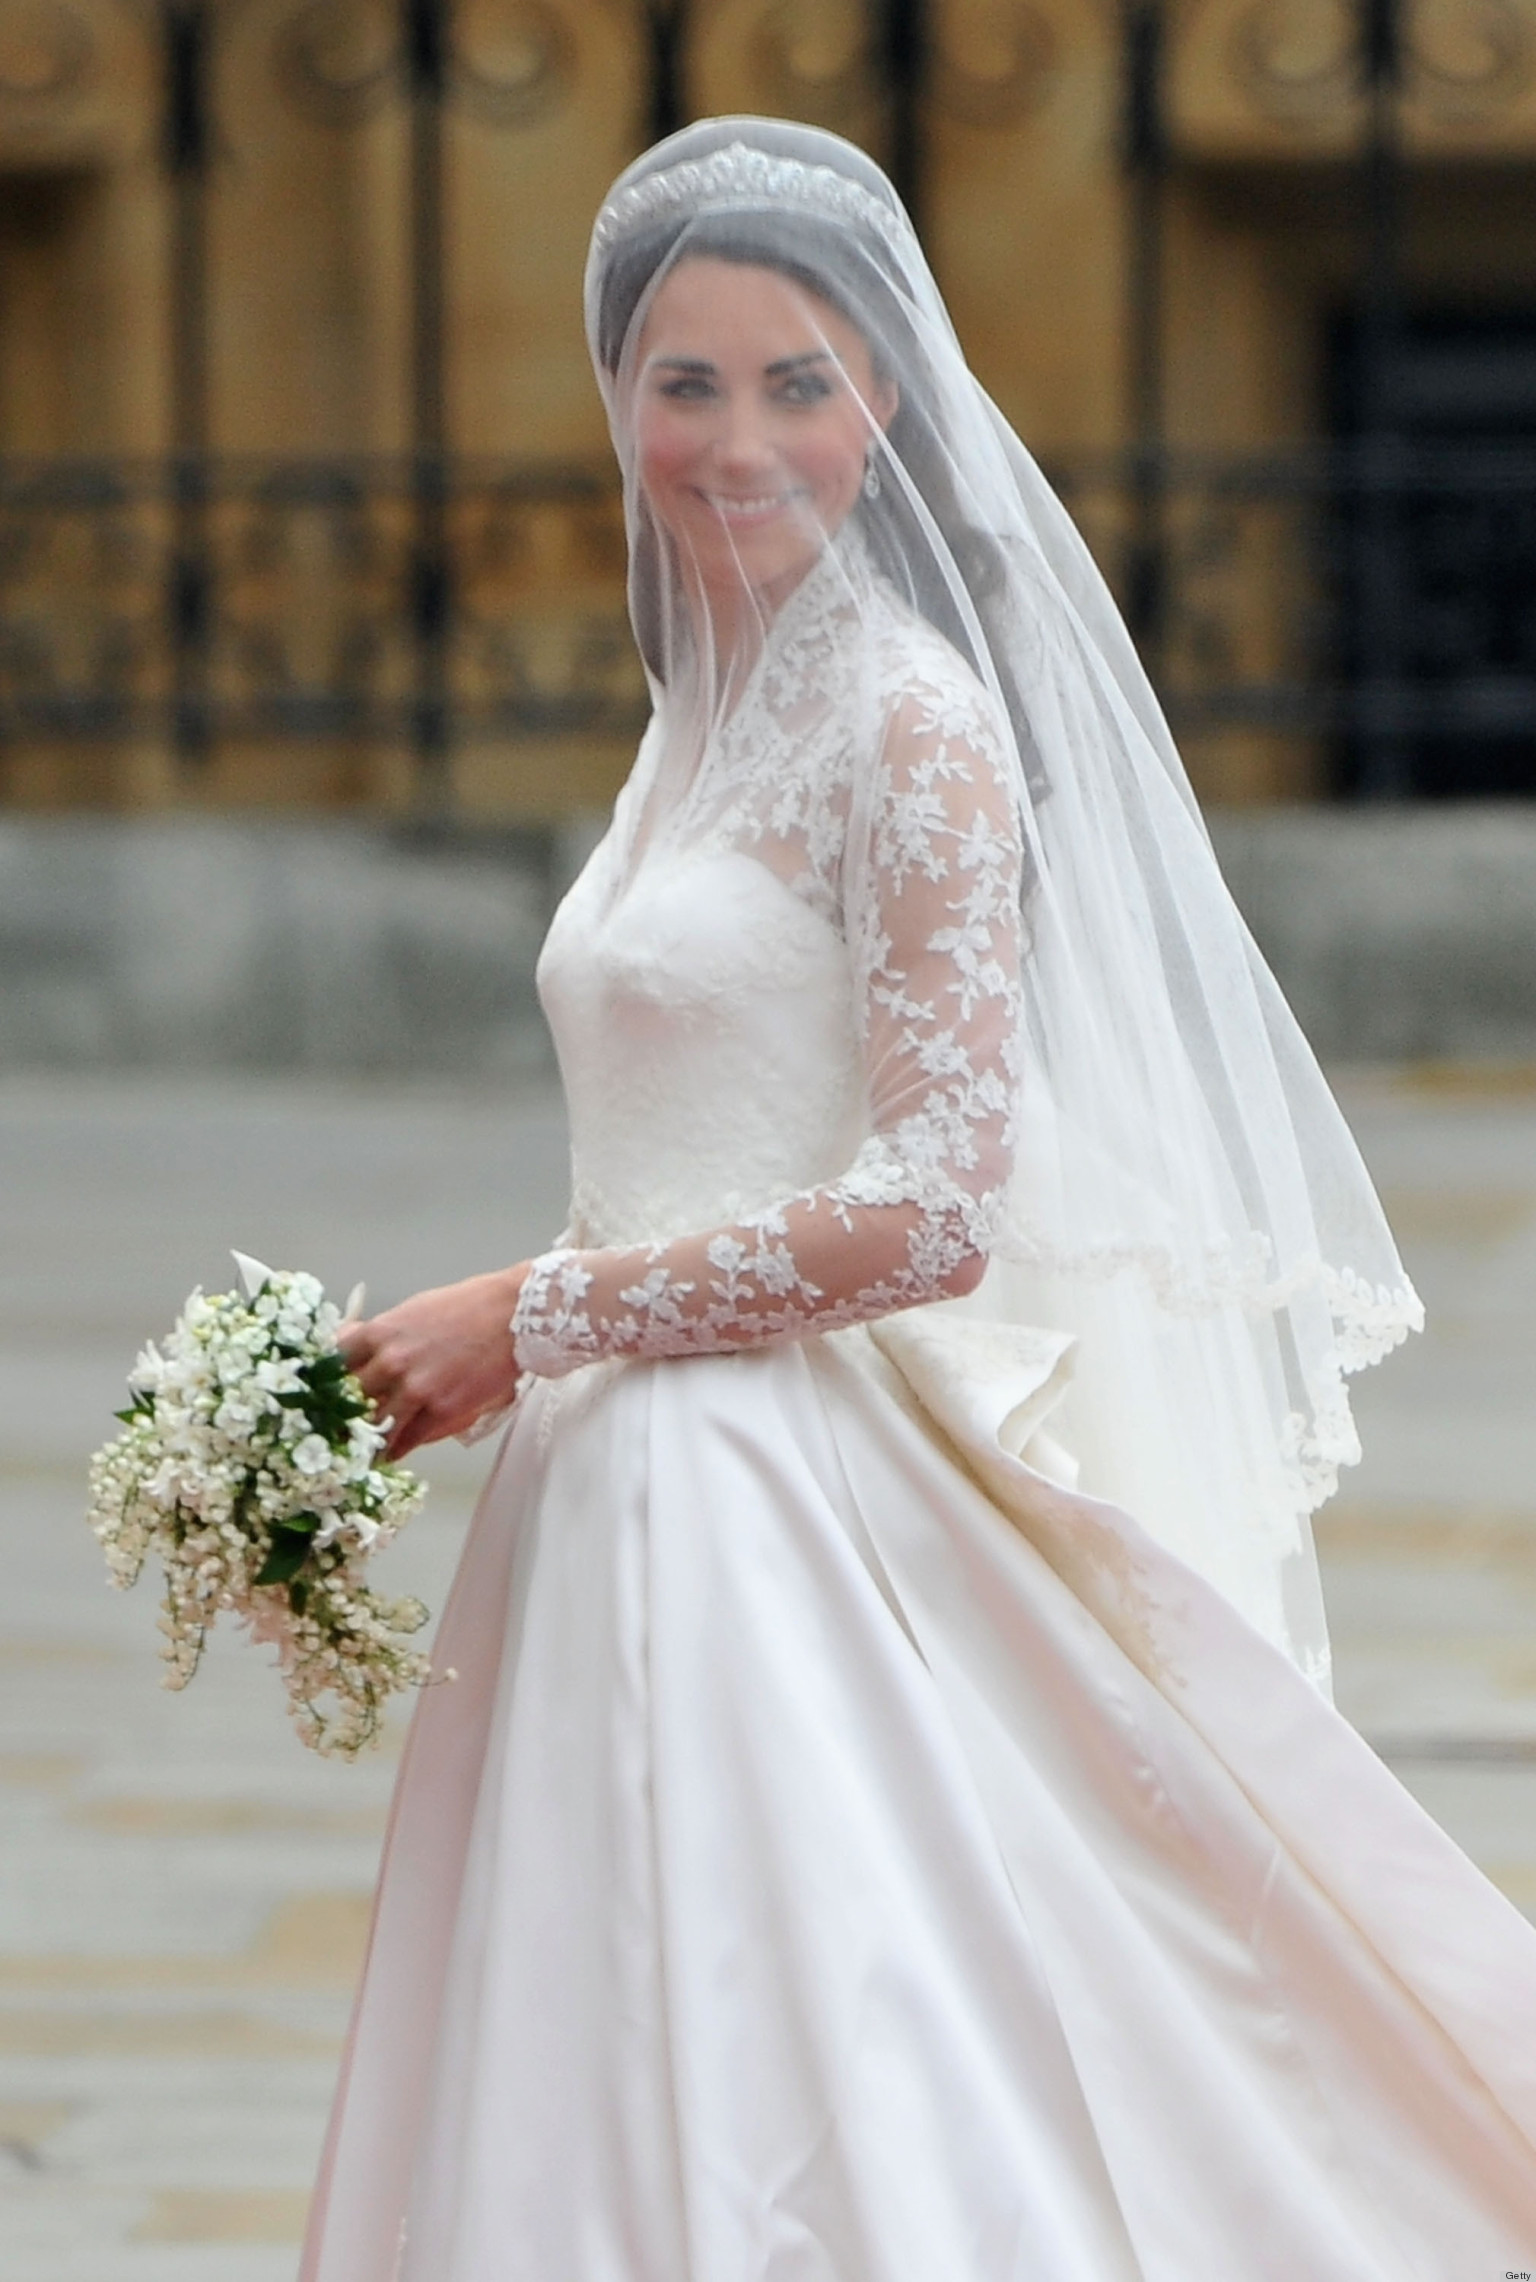 Kate Middleton Wedding Dress Causes Wikipedia Controversy POLL